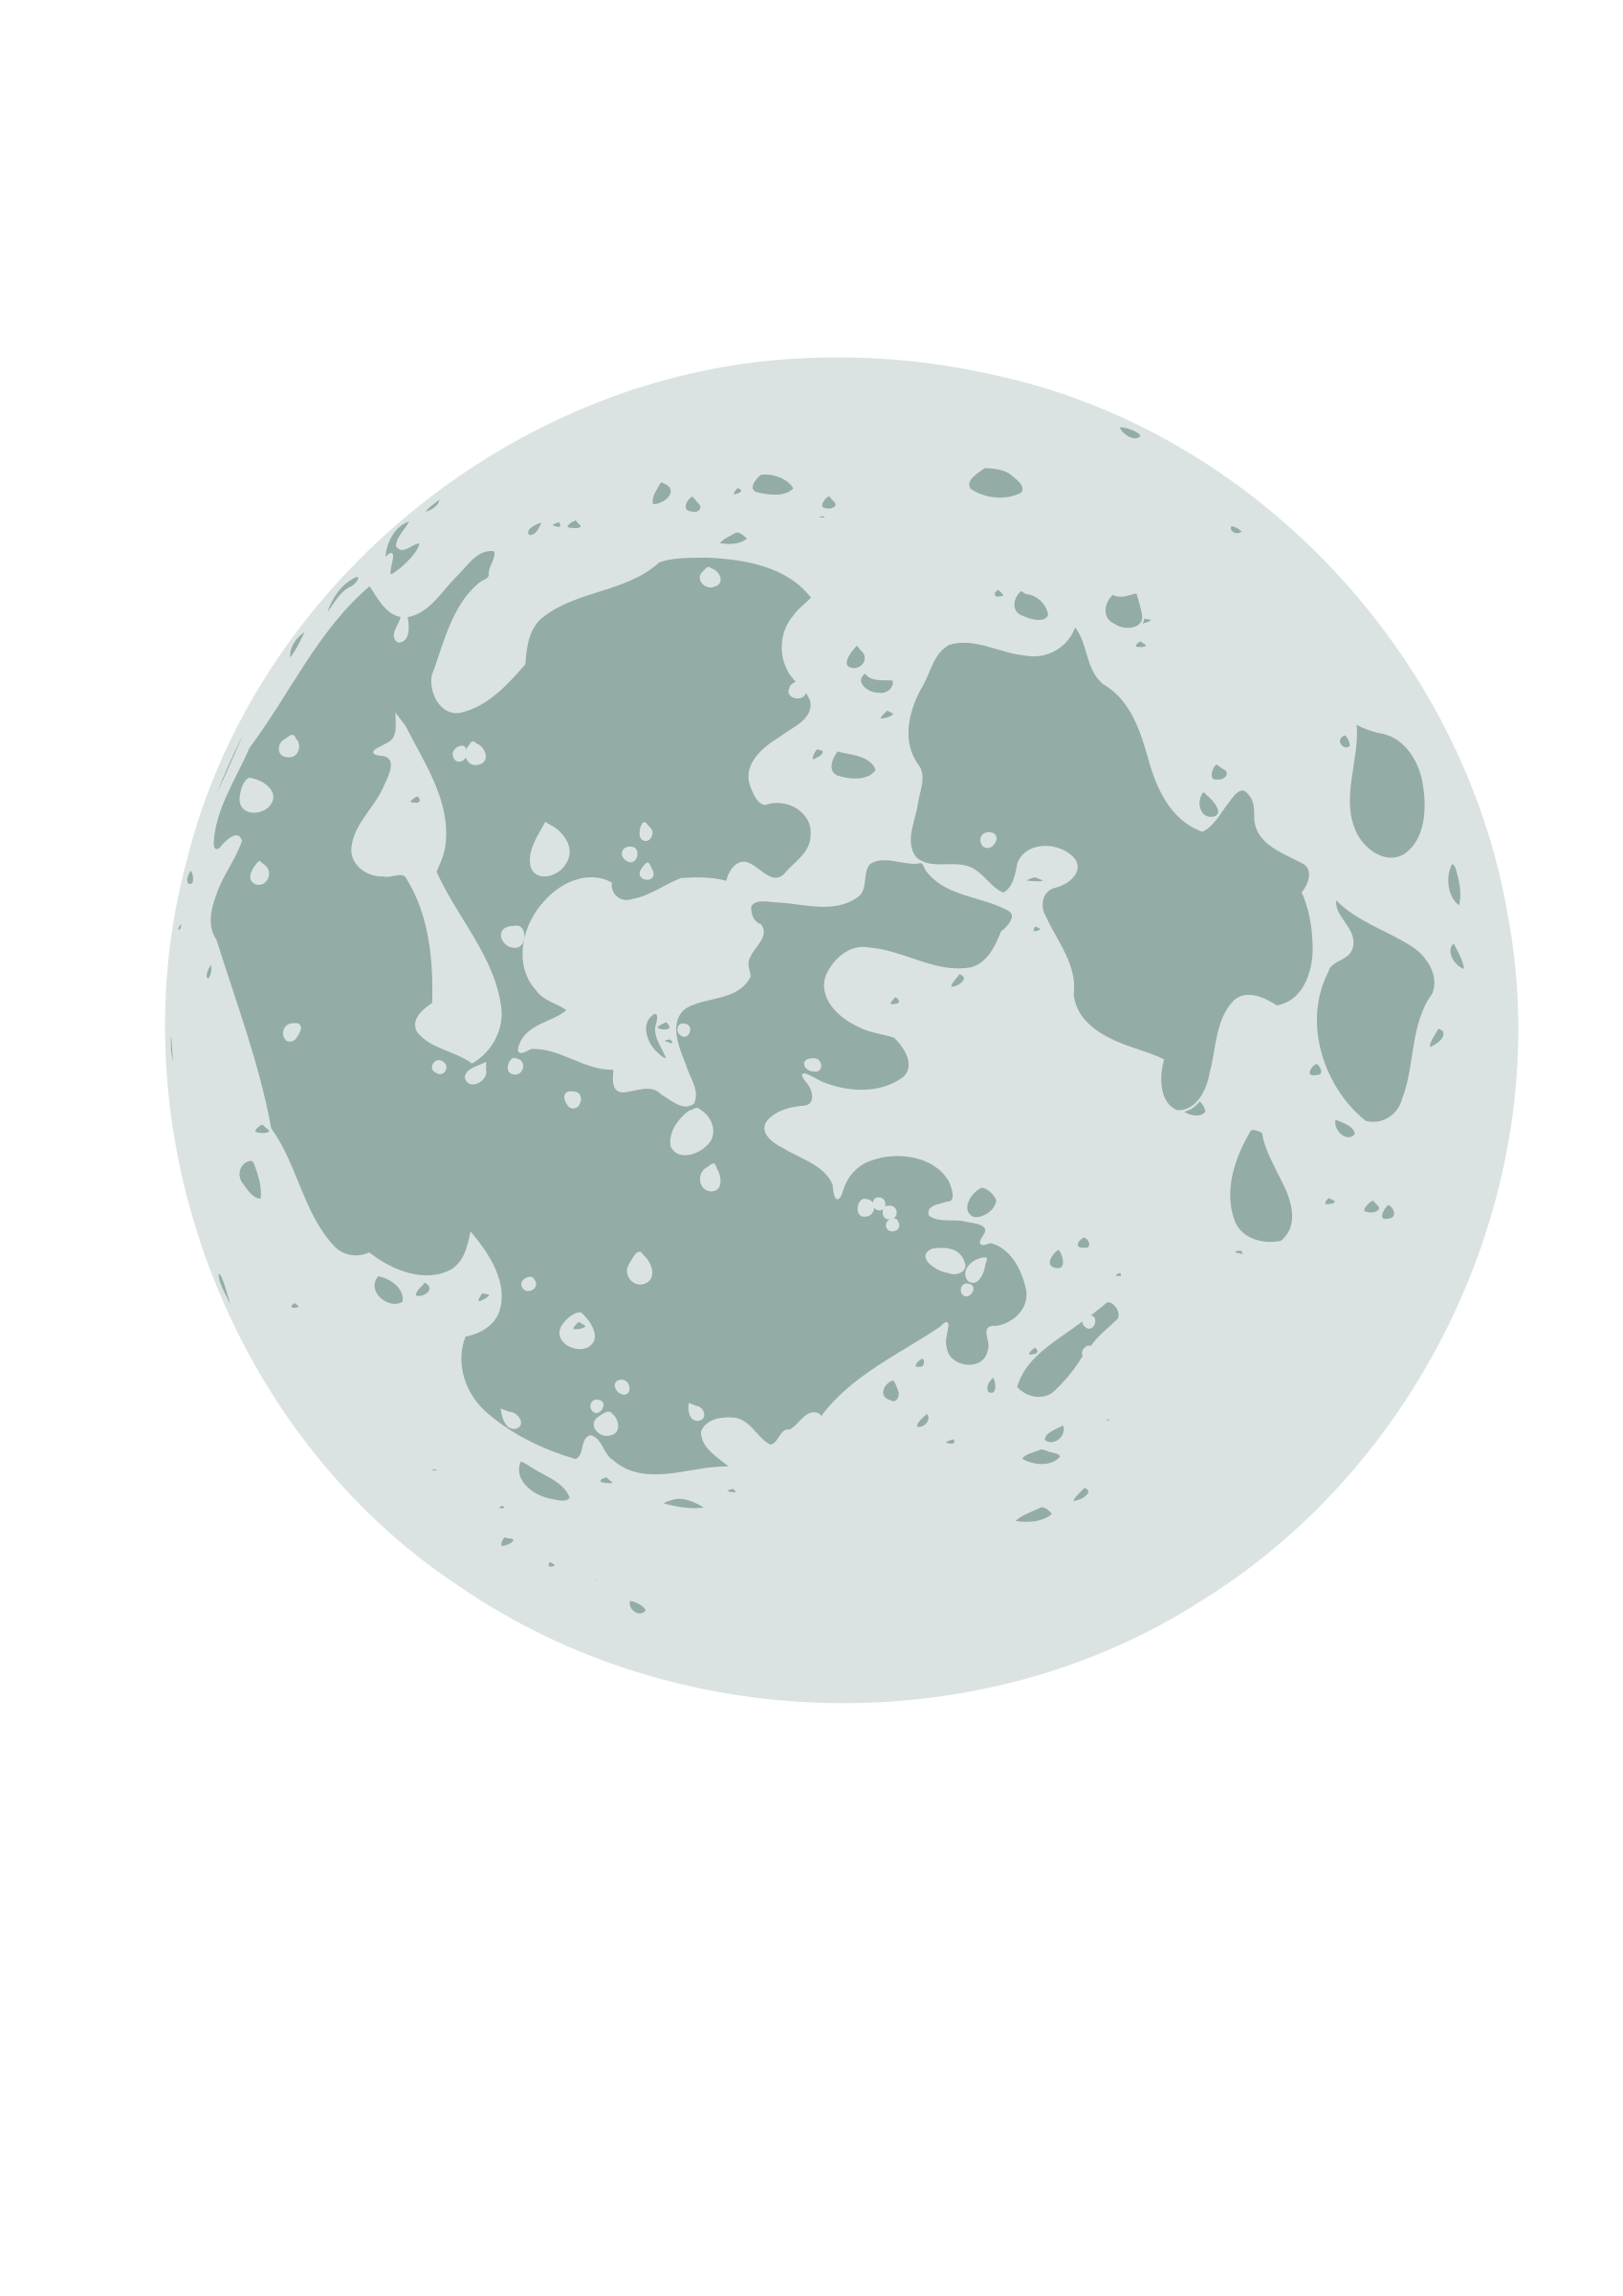 Cartoon style moon by Susa